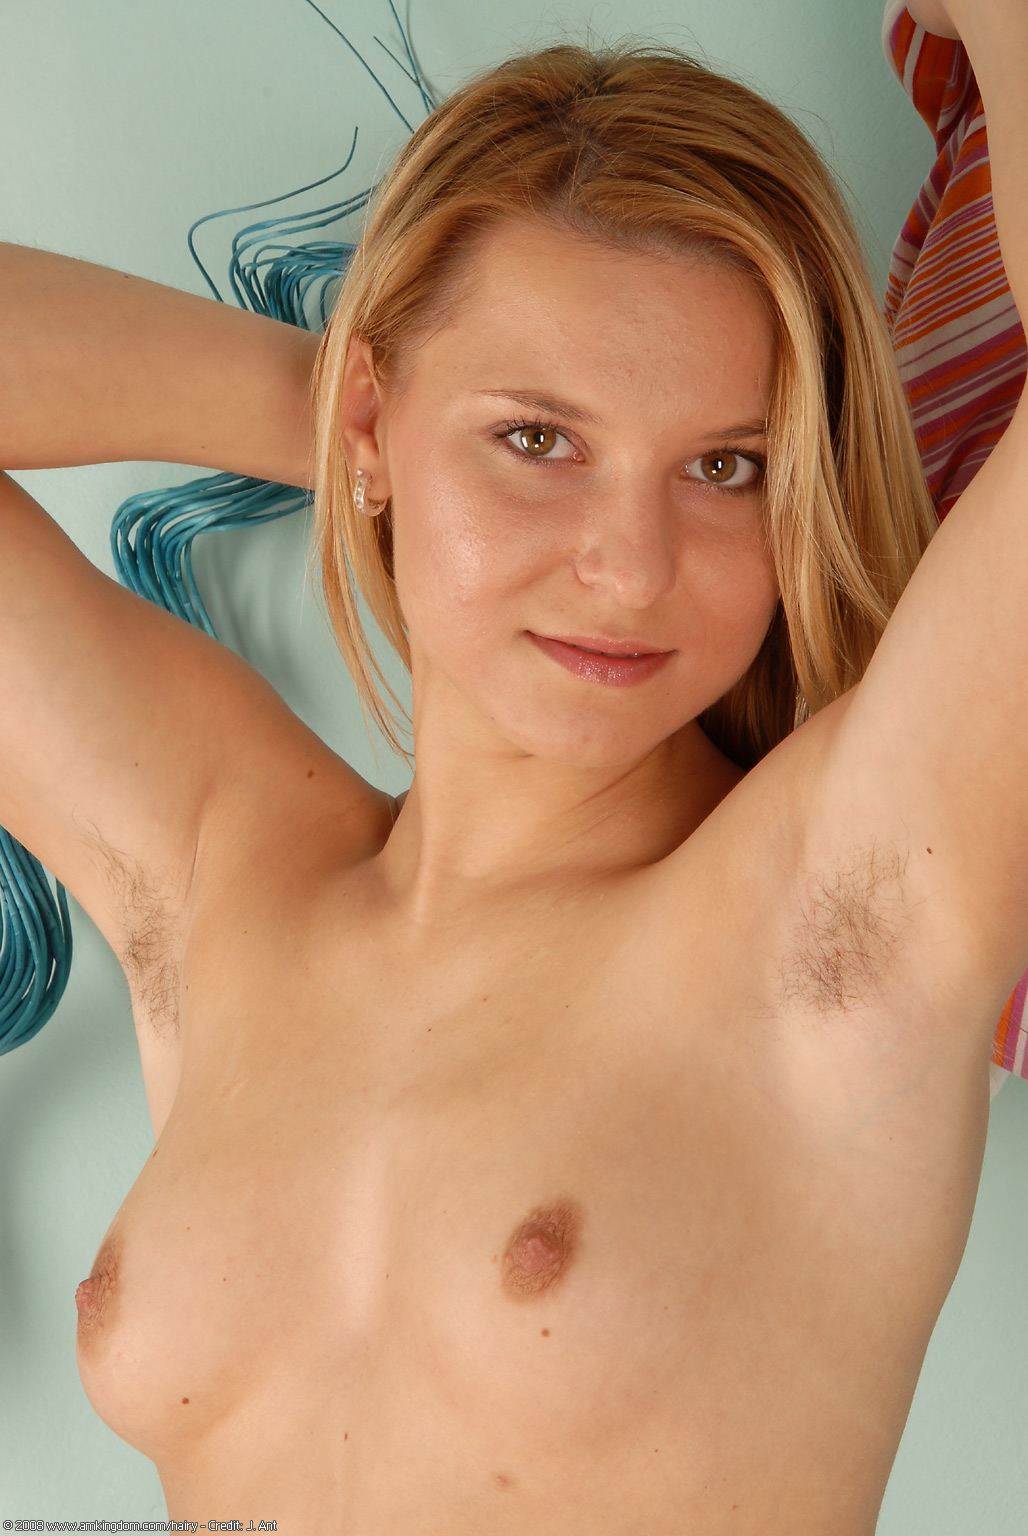 Teen Girl Hairy Armpits